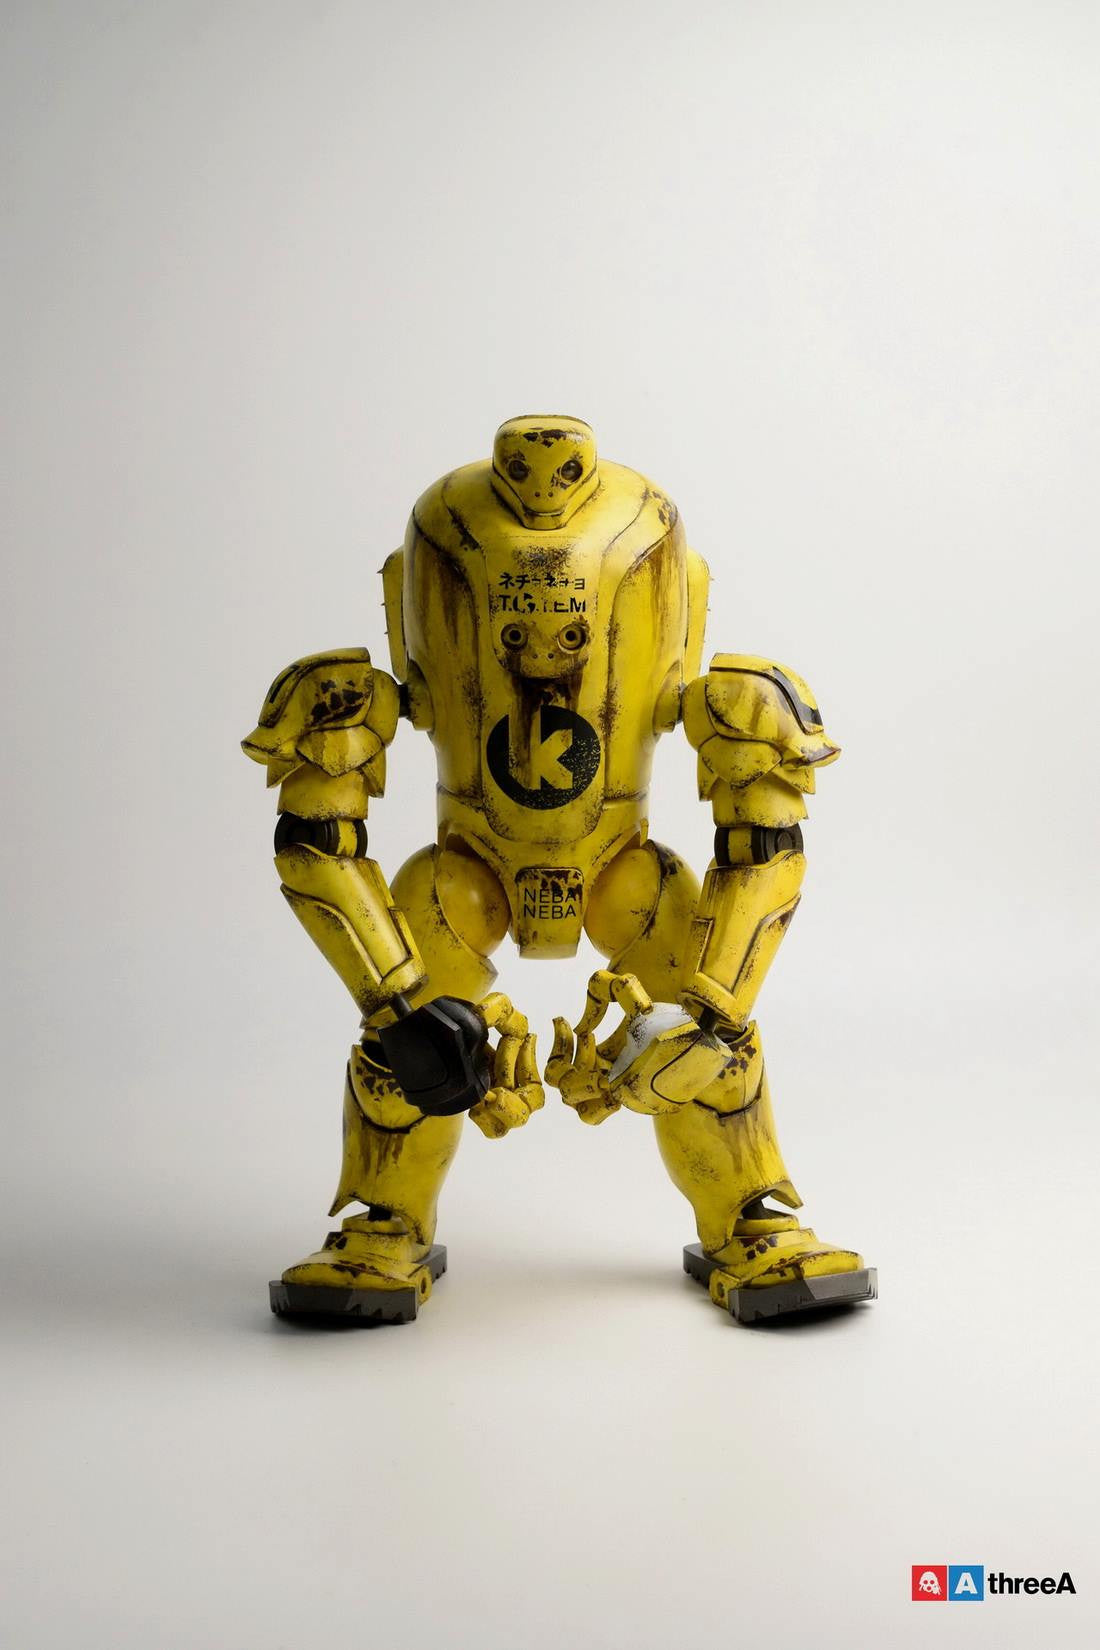 ThreeA - Evenfall - 1/6 T.O.T.E.M Thug Pugillo - K Striker-047 (Yellow) - Marvelous Toys - 4